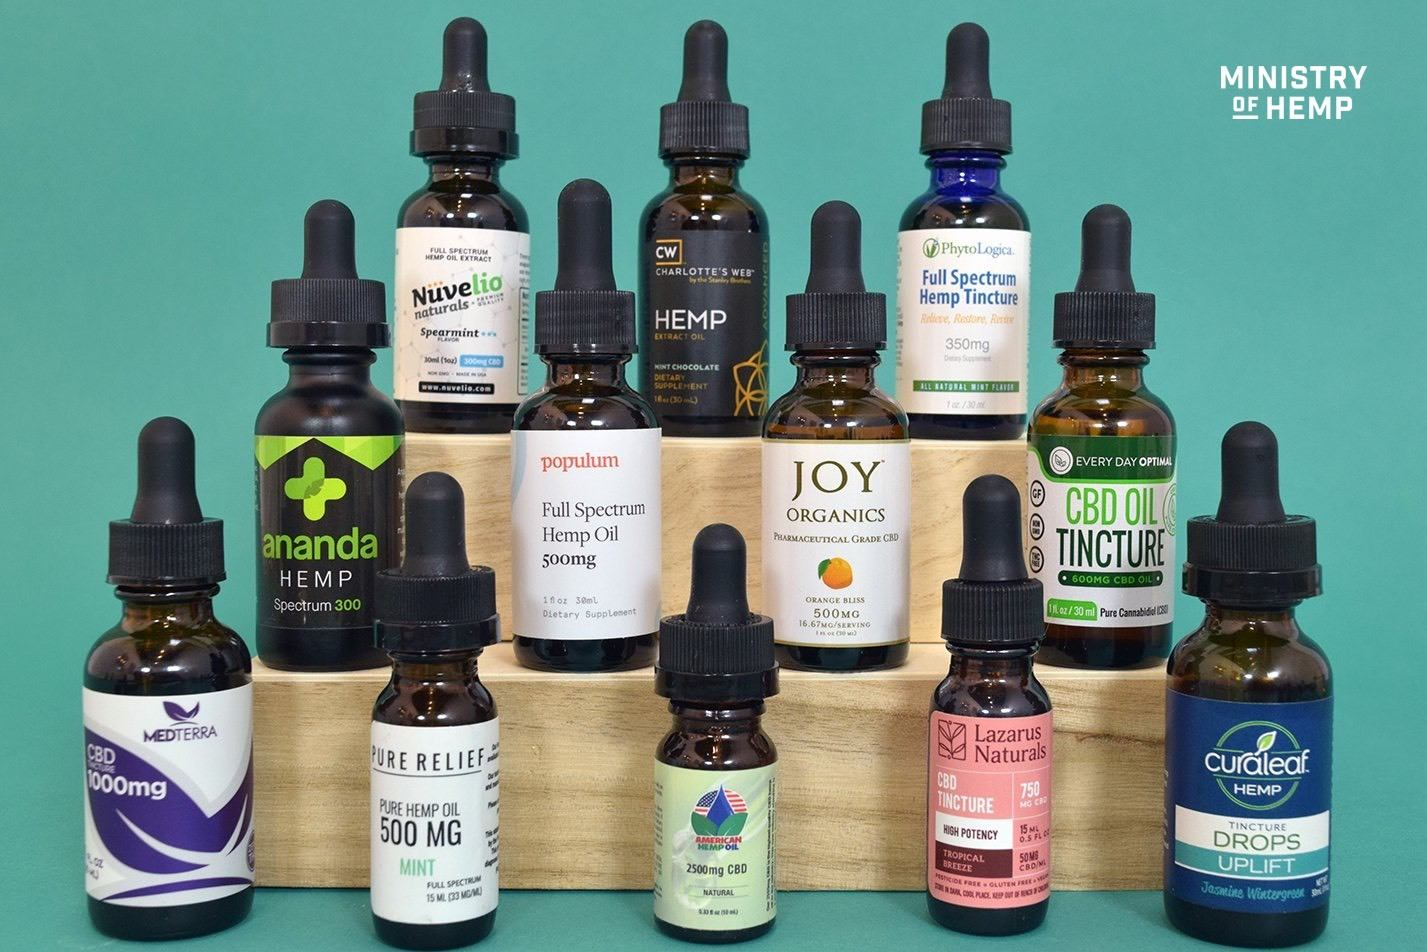 20 Best CBD Oils for Sale [The 2020 ...shoppingcbd.com